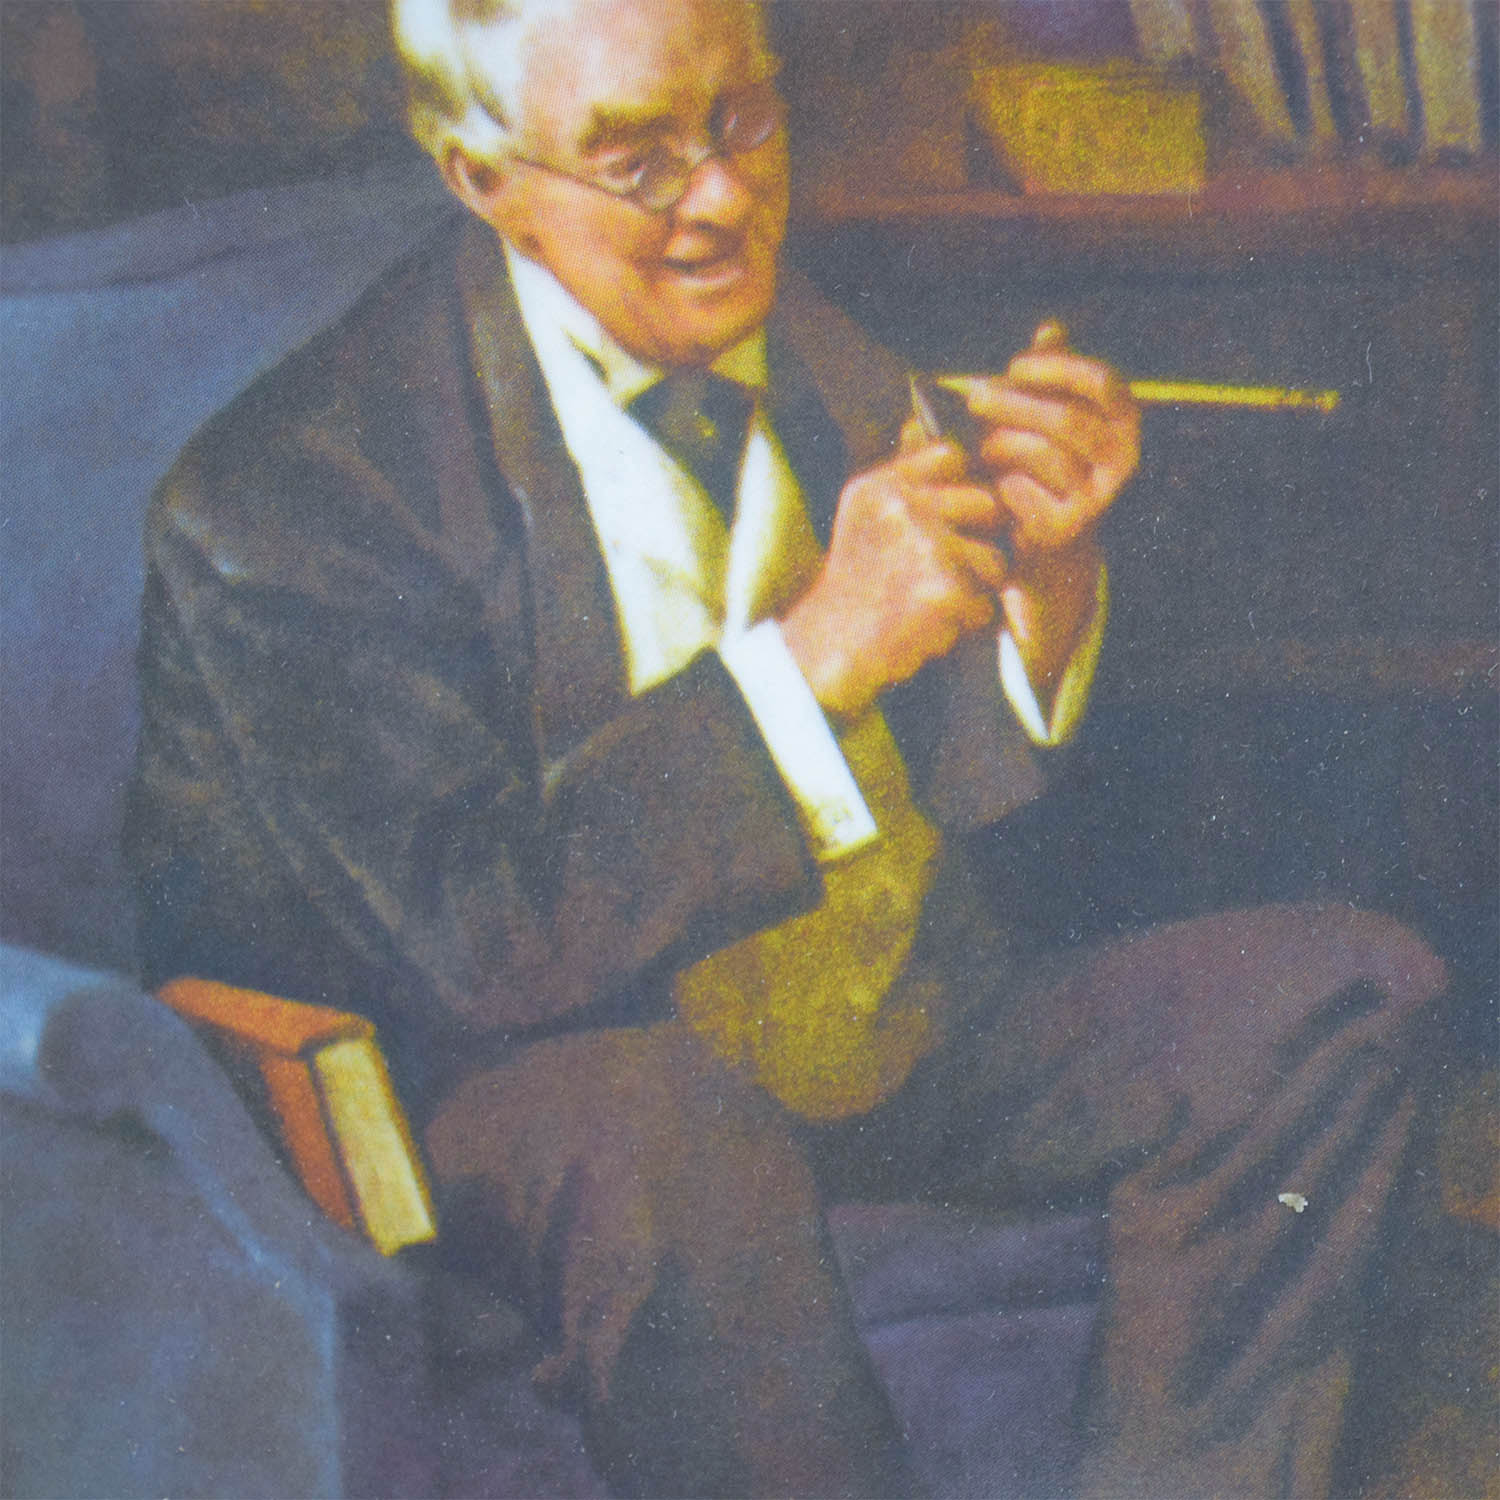 Edward Knowles Reproduction Plate Norman Rockwell The Tycoon Edward M. Knowles